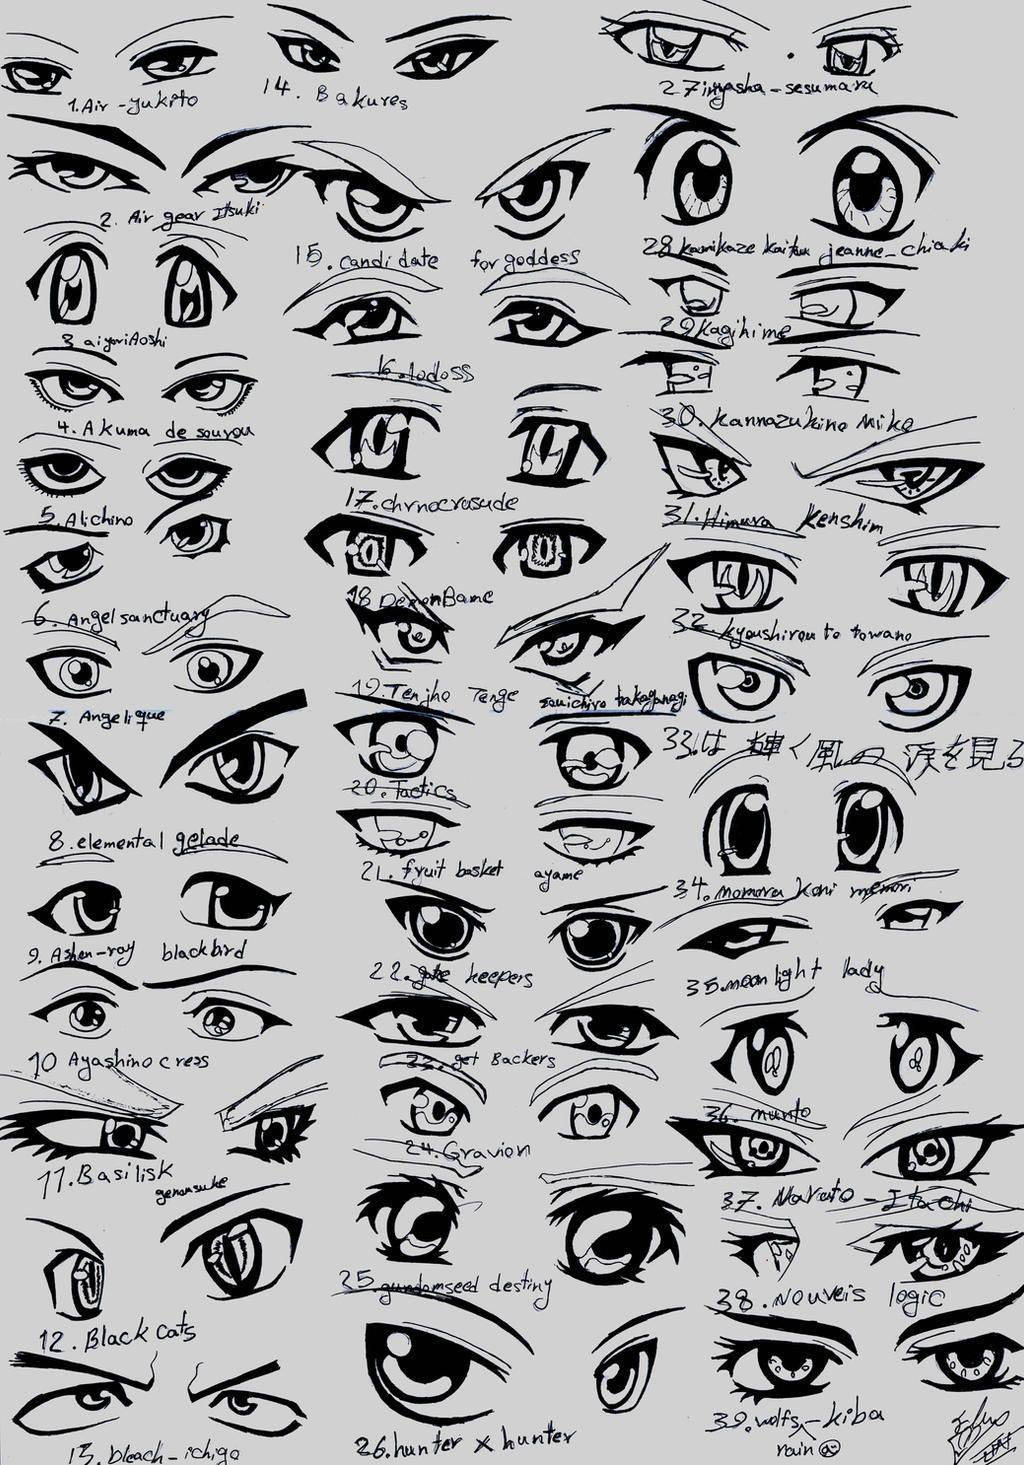 39 male anime eyes by eliantART on DeviantArt